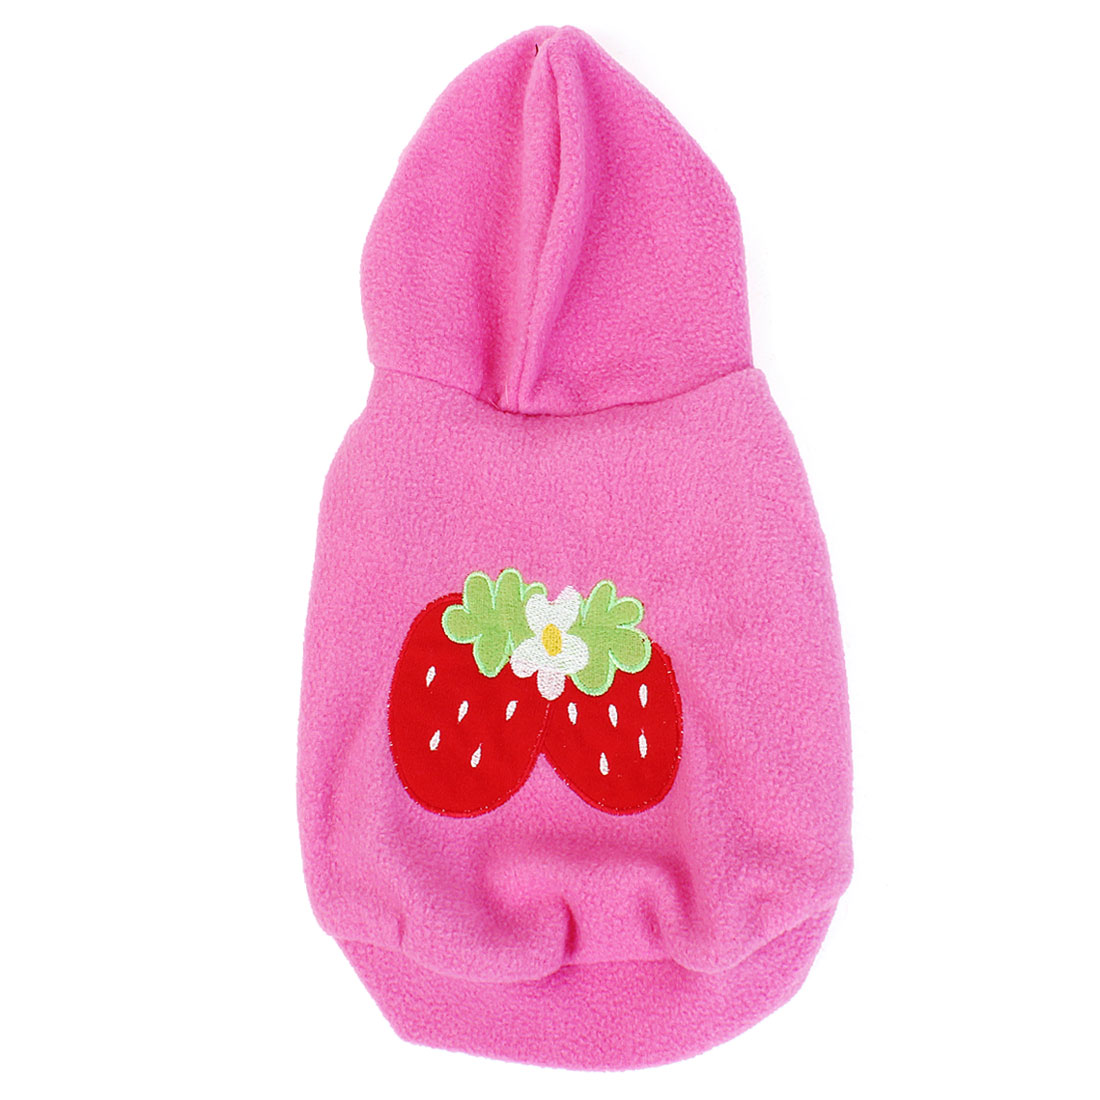 Winter Warm Strawberry Pattern Hoodie Sleeveless Pet Dog Doggy Apparel Coat Clothes Pink Size XS